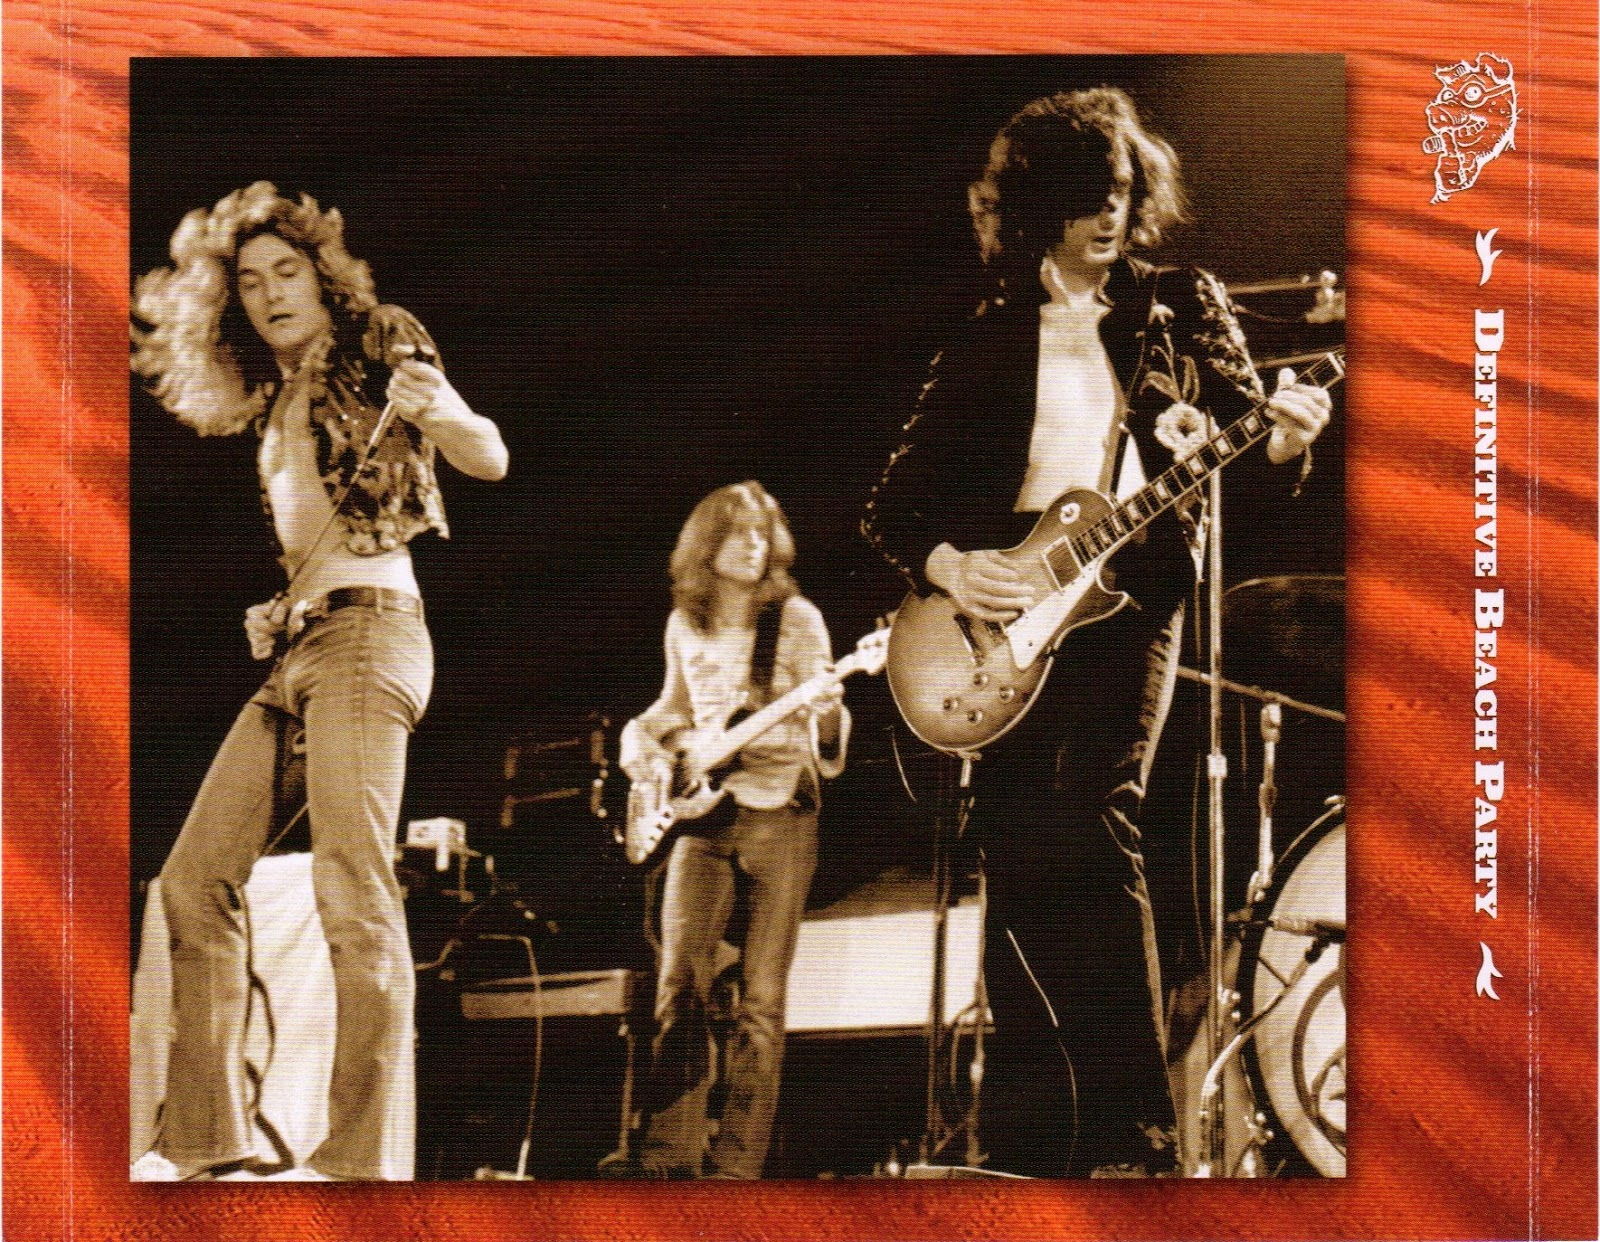 Long Live Led Zeppelin